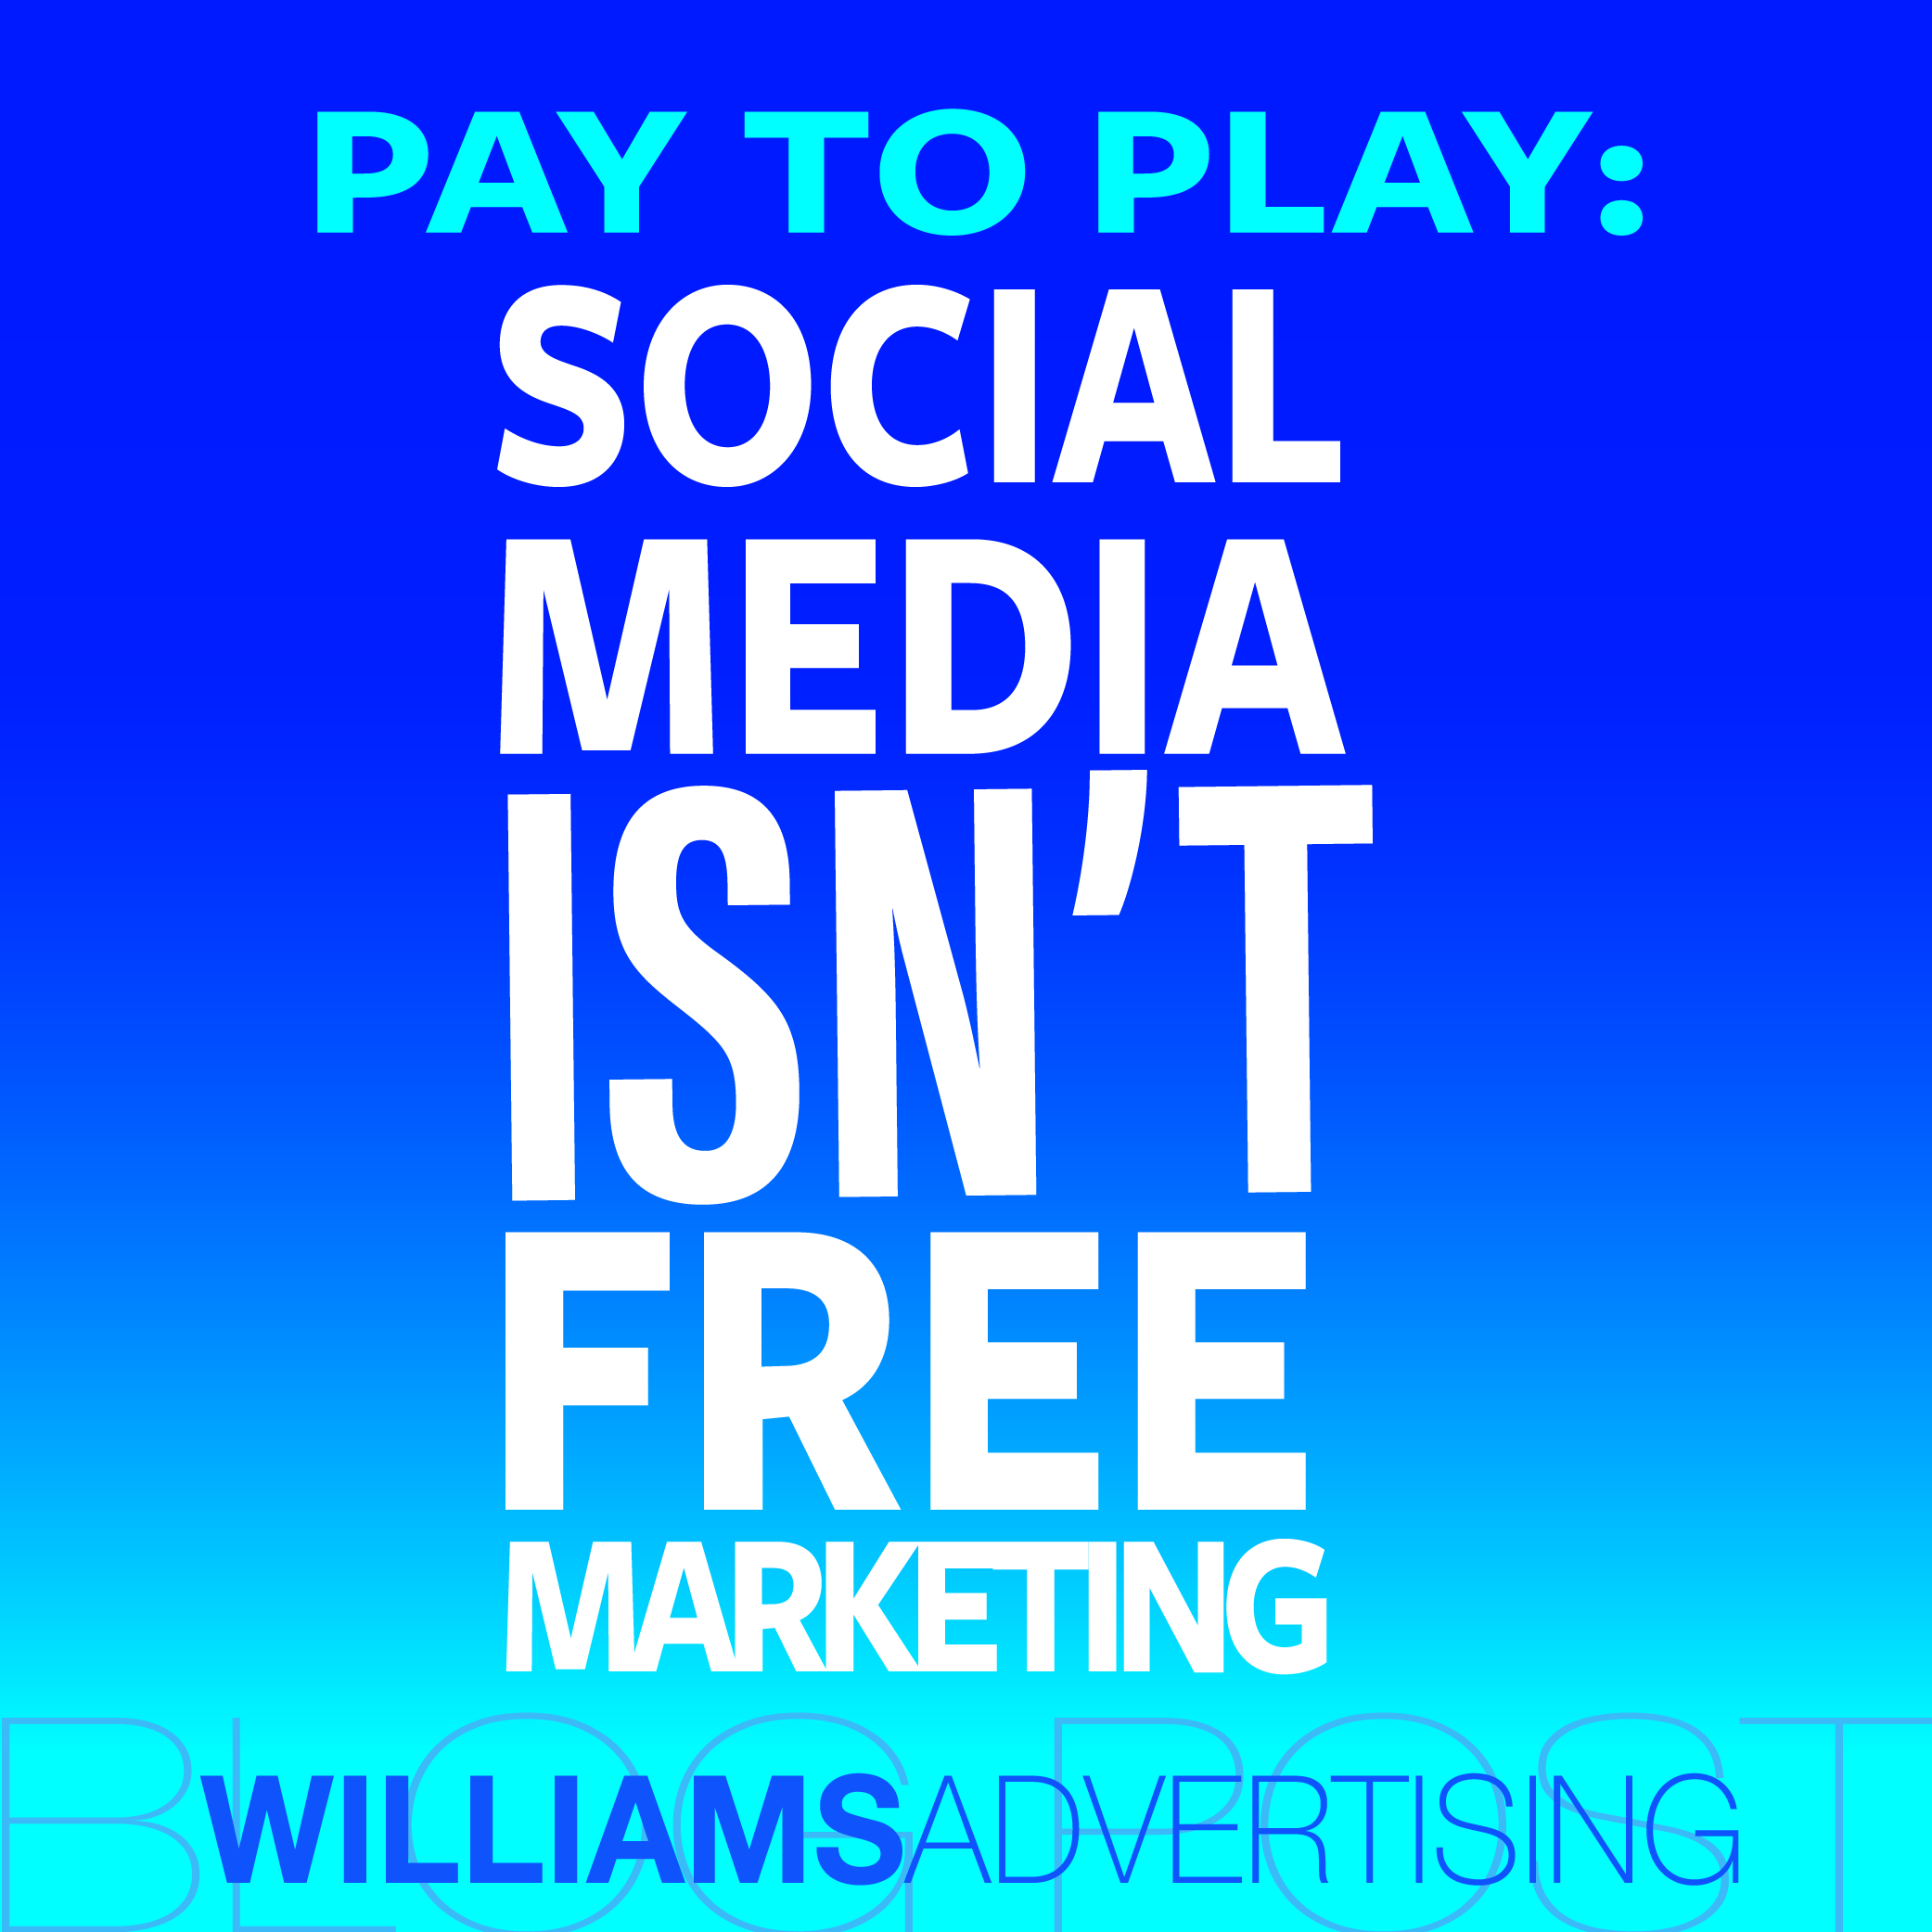 Social Media Isn't Free Marketing